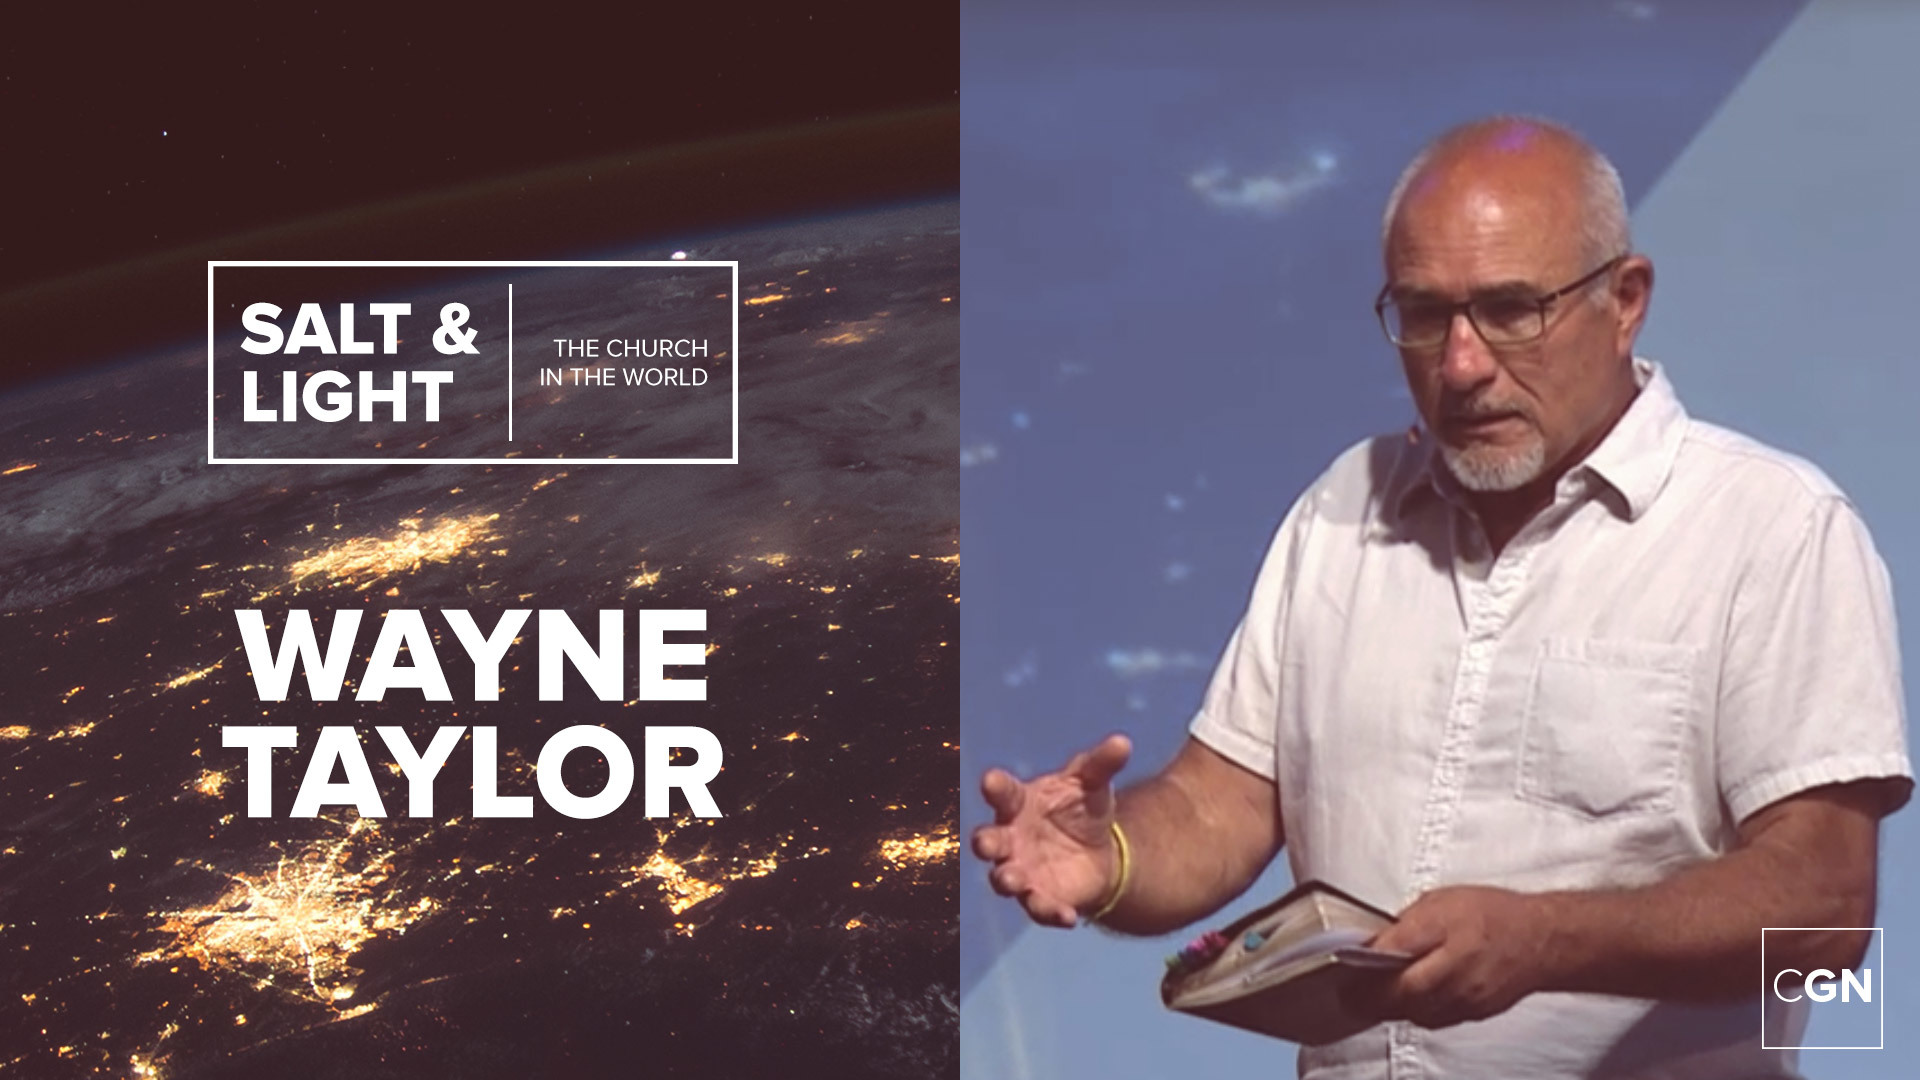 Session 13: Being the Salt of the Earth - Wayne Taylor